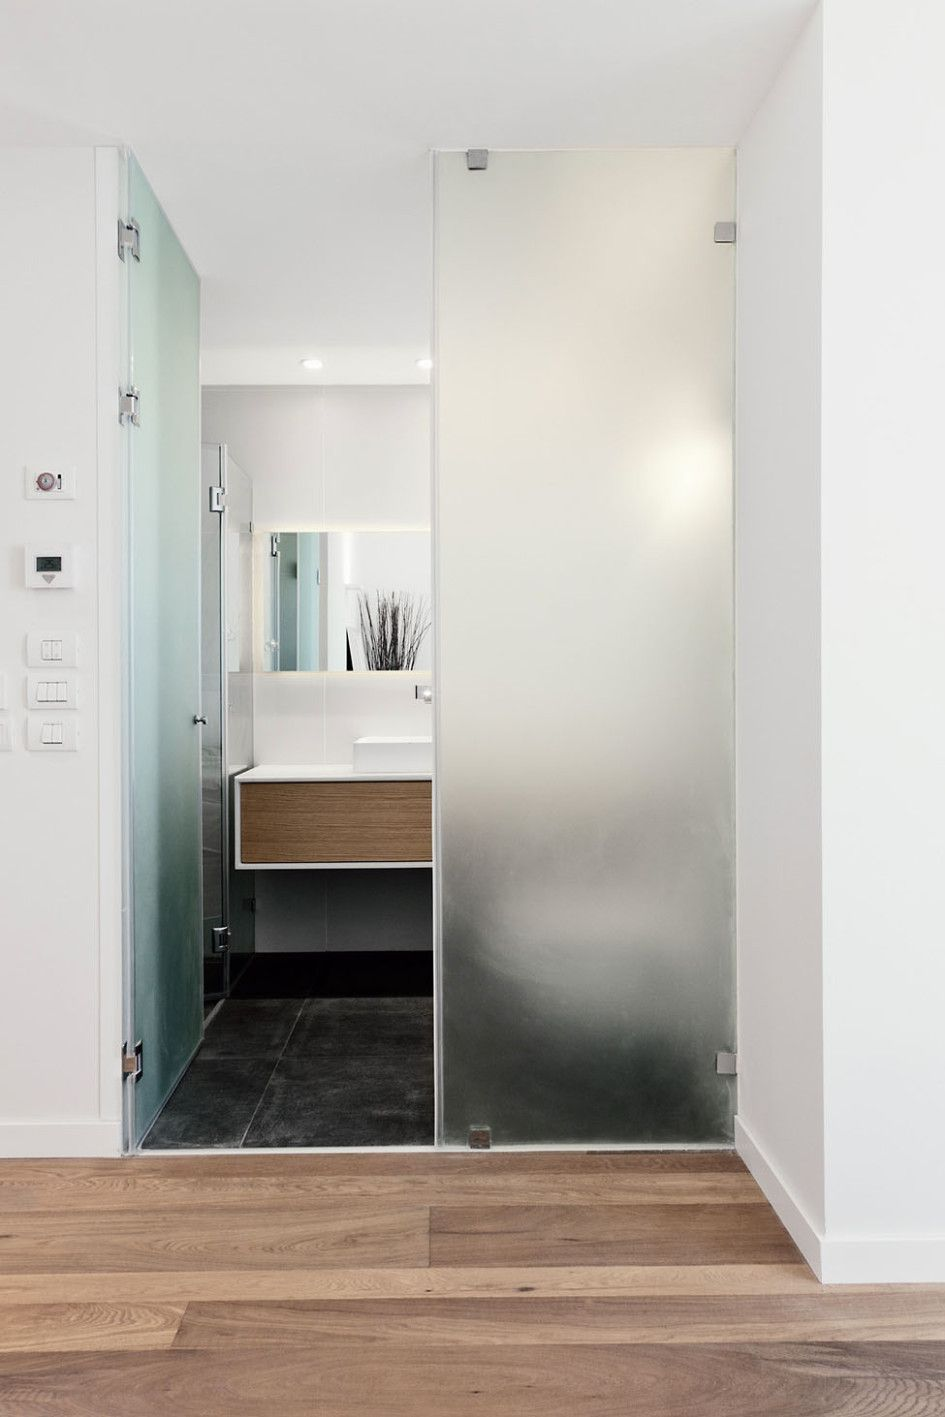 Apartments, Comely Modern TLV Apartments3 Project By The Gamma Arc ...